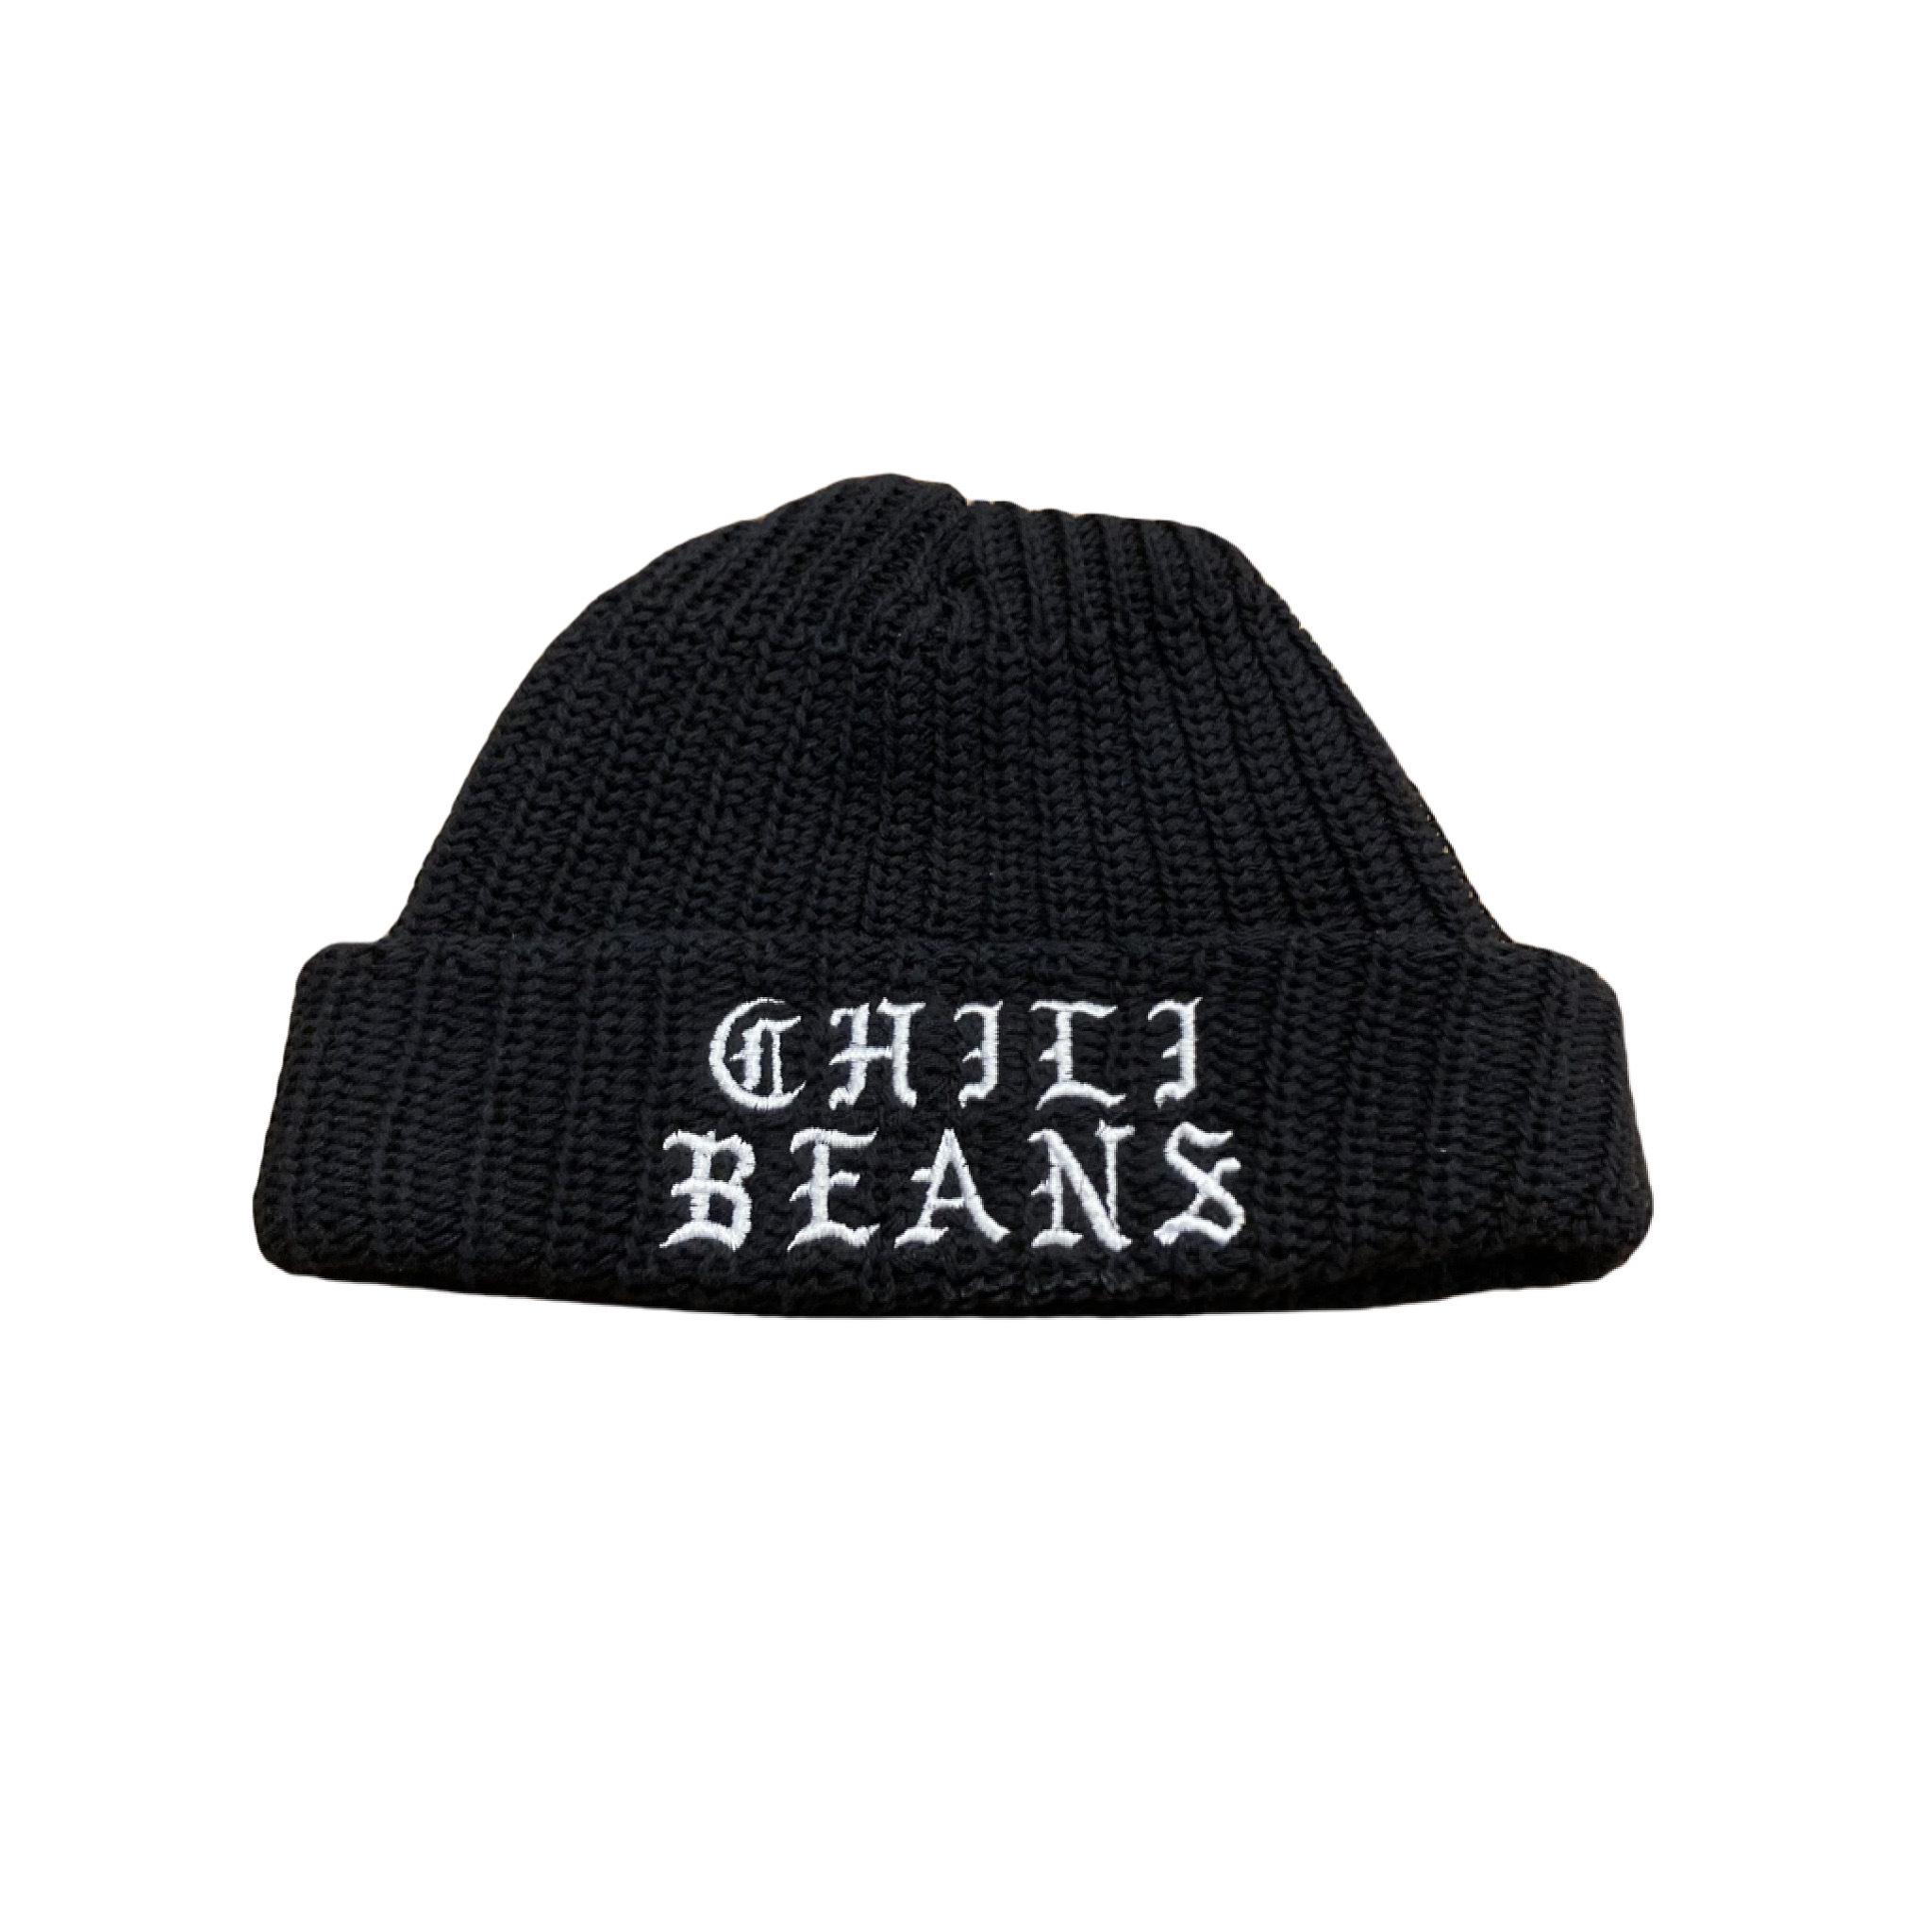 CHILI BEANS #Casual Watch Cap Black